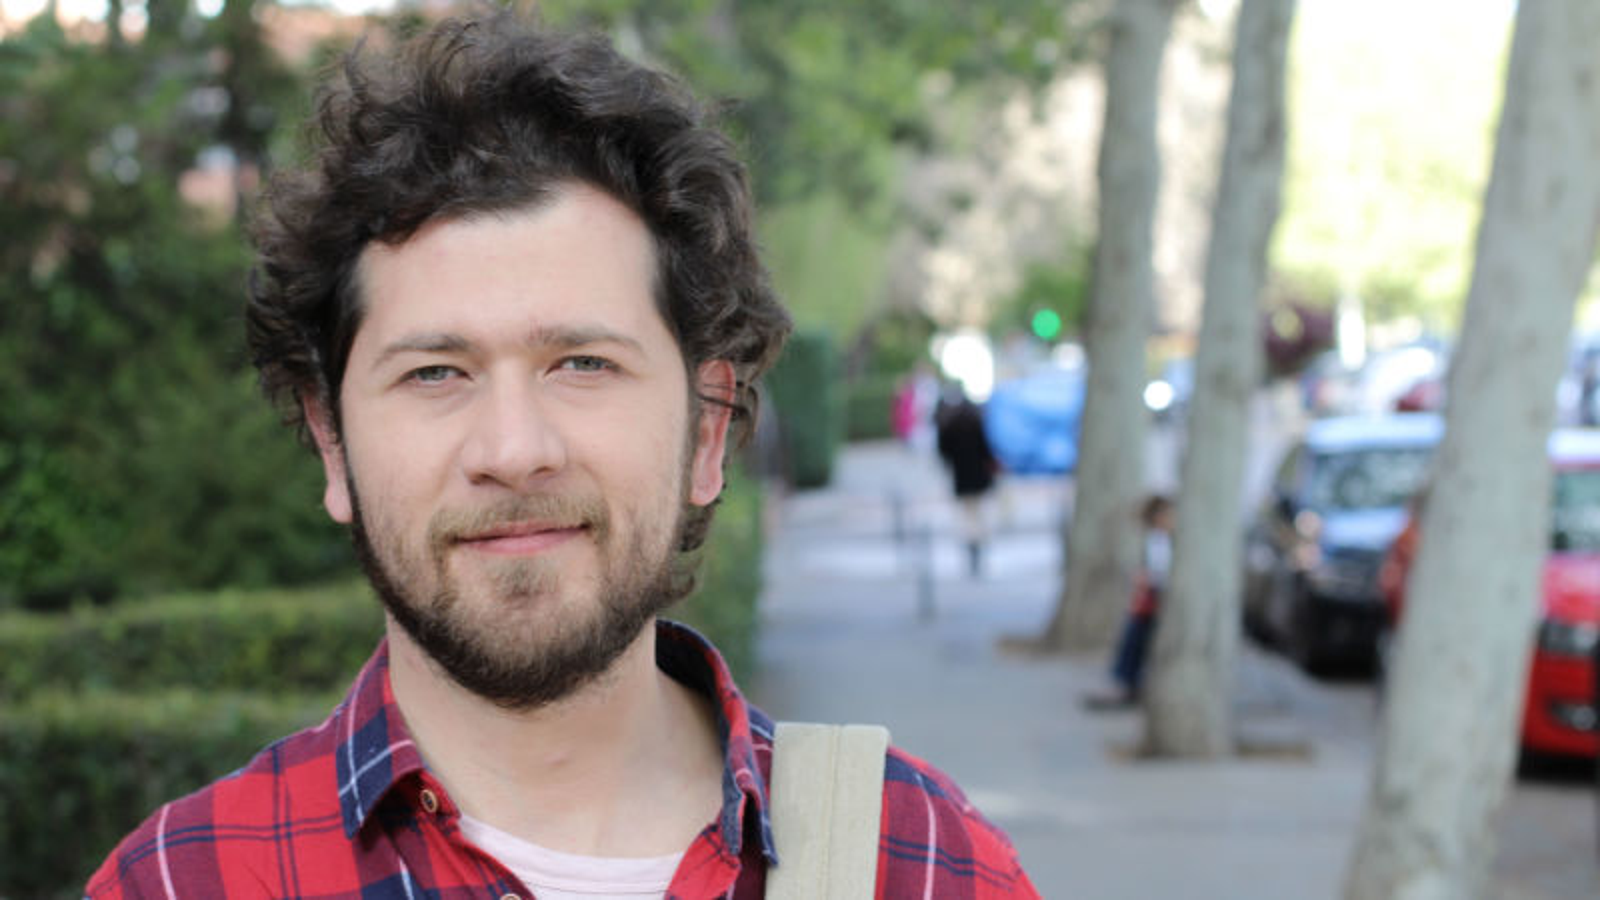 Liberal Relieved He Never Has To Introspect Again After Assembling All The Correct Opinions